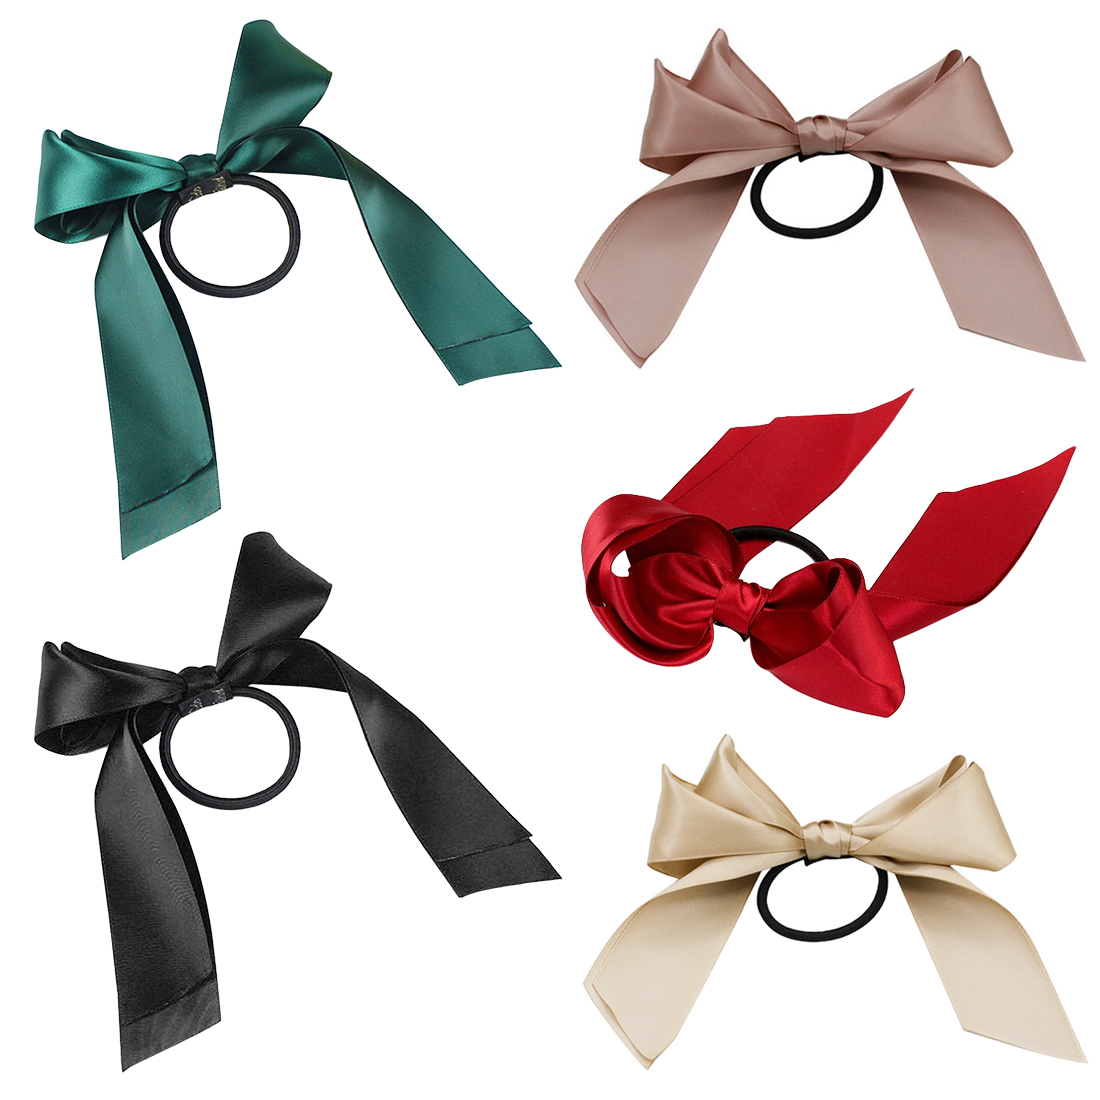 Hair ribbon is melting large bow knot hair circle popular literary rope